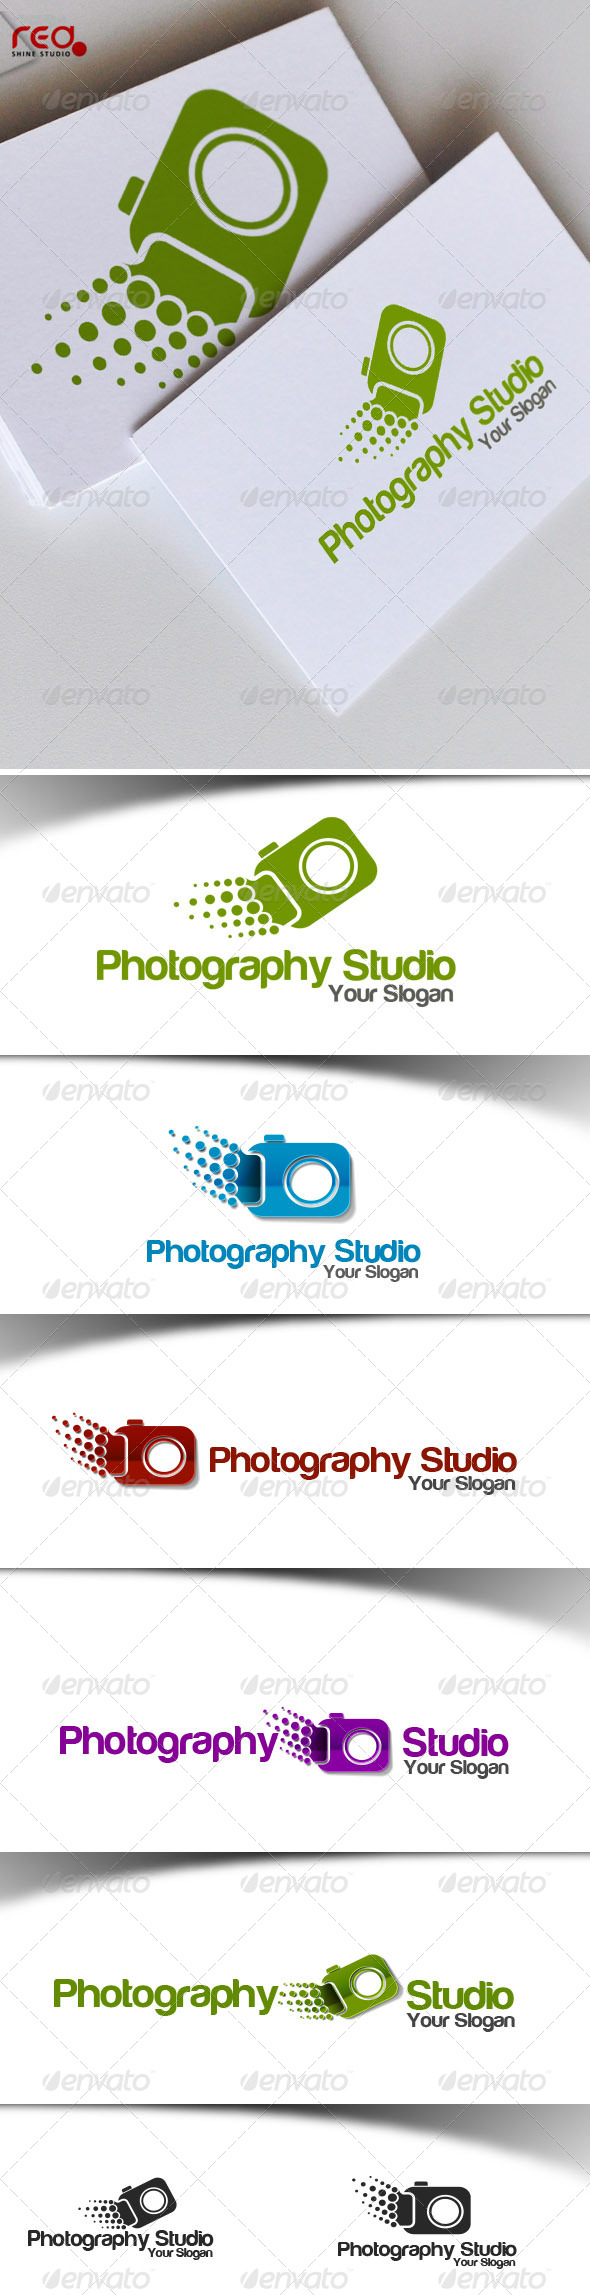 Photography Studio Logo - Vector Abstract